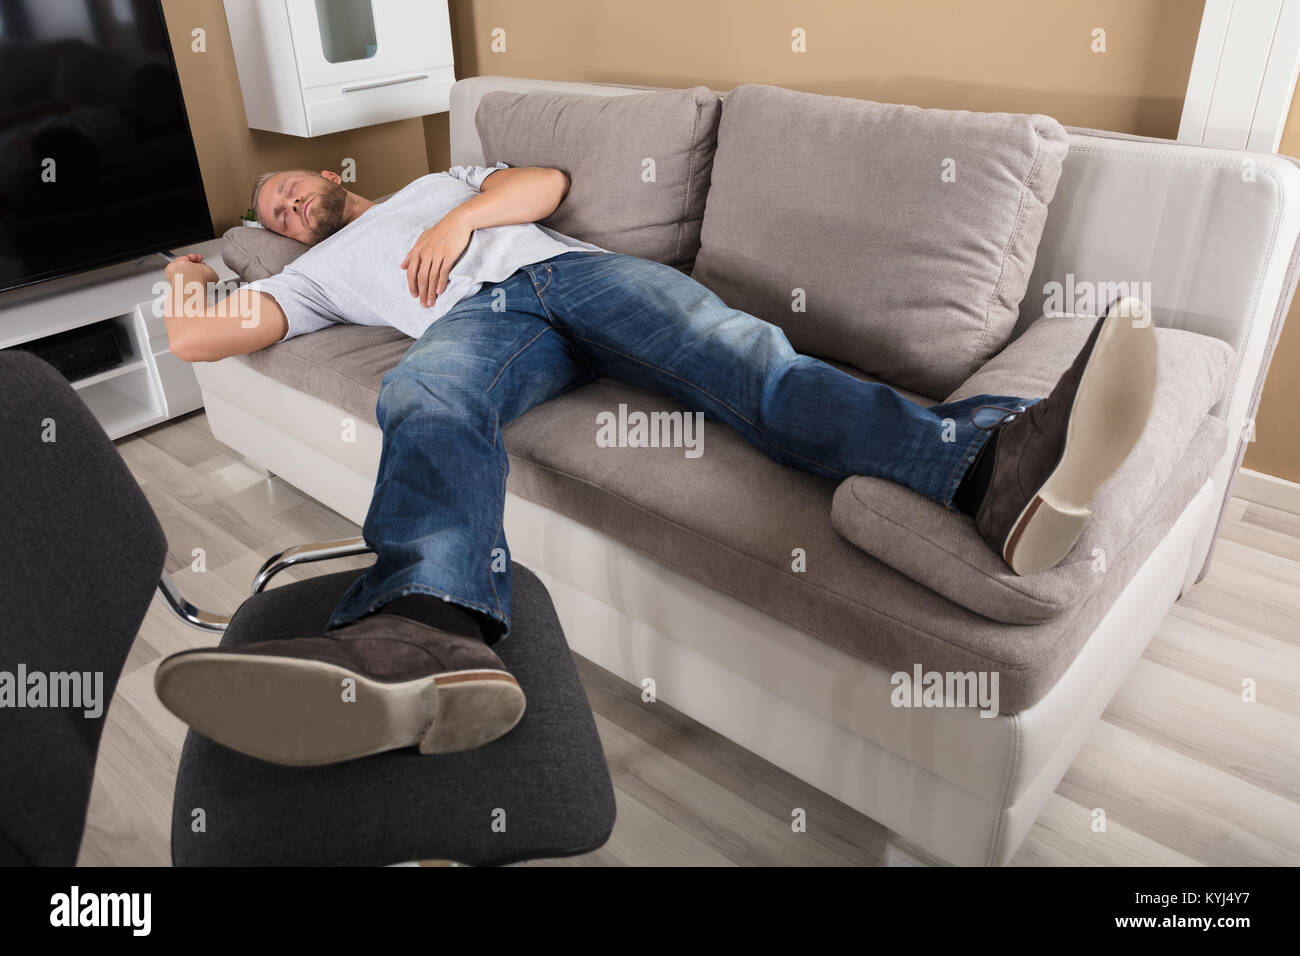 Young Man Sleeping On Couch In Living Room Stock Photo